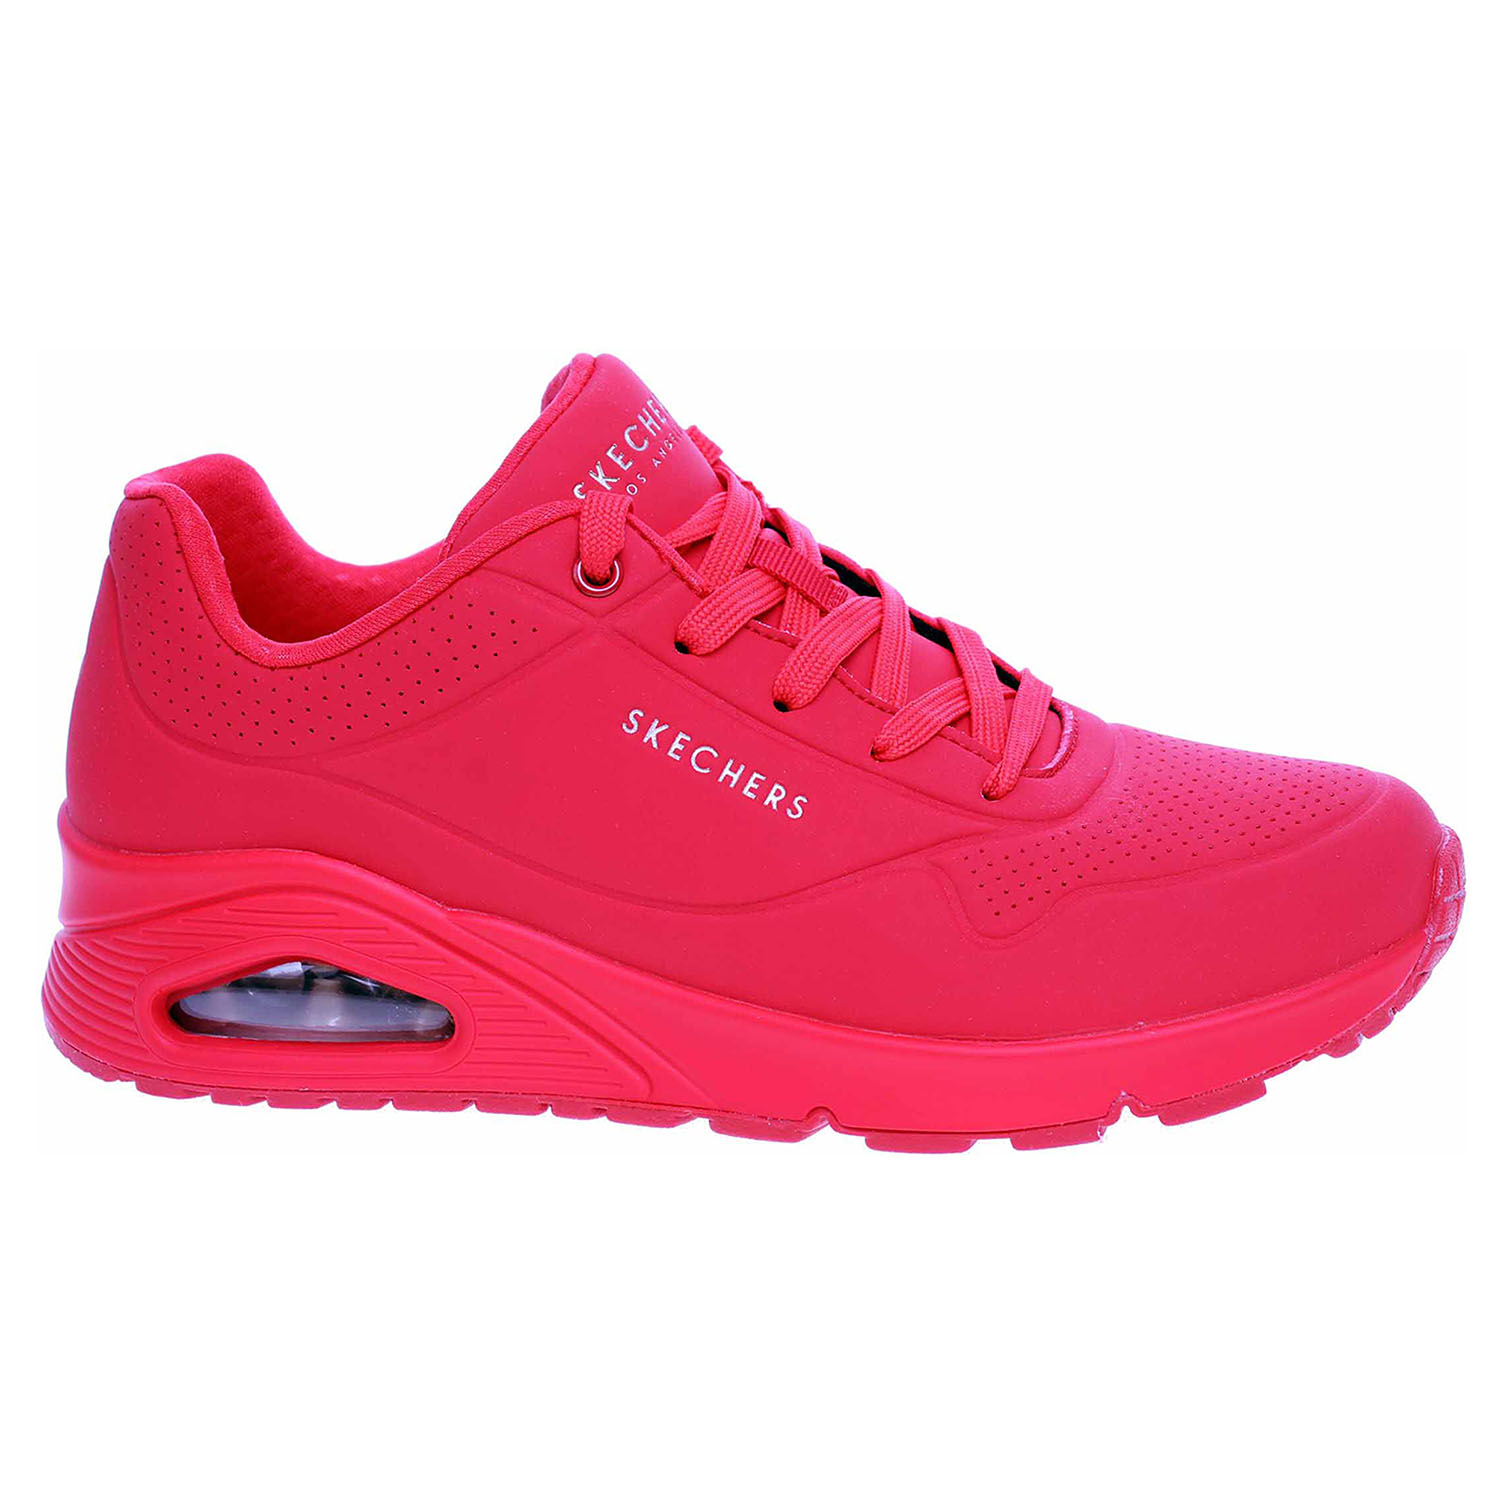 Skechers Uno - Stand on Air red 73690 RED 39